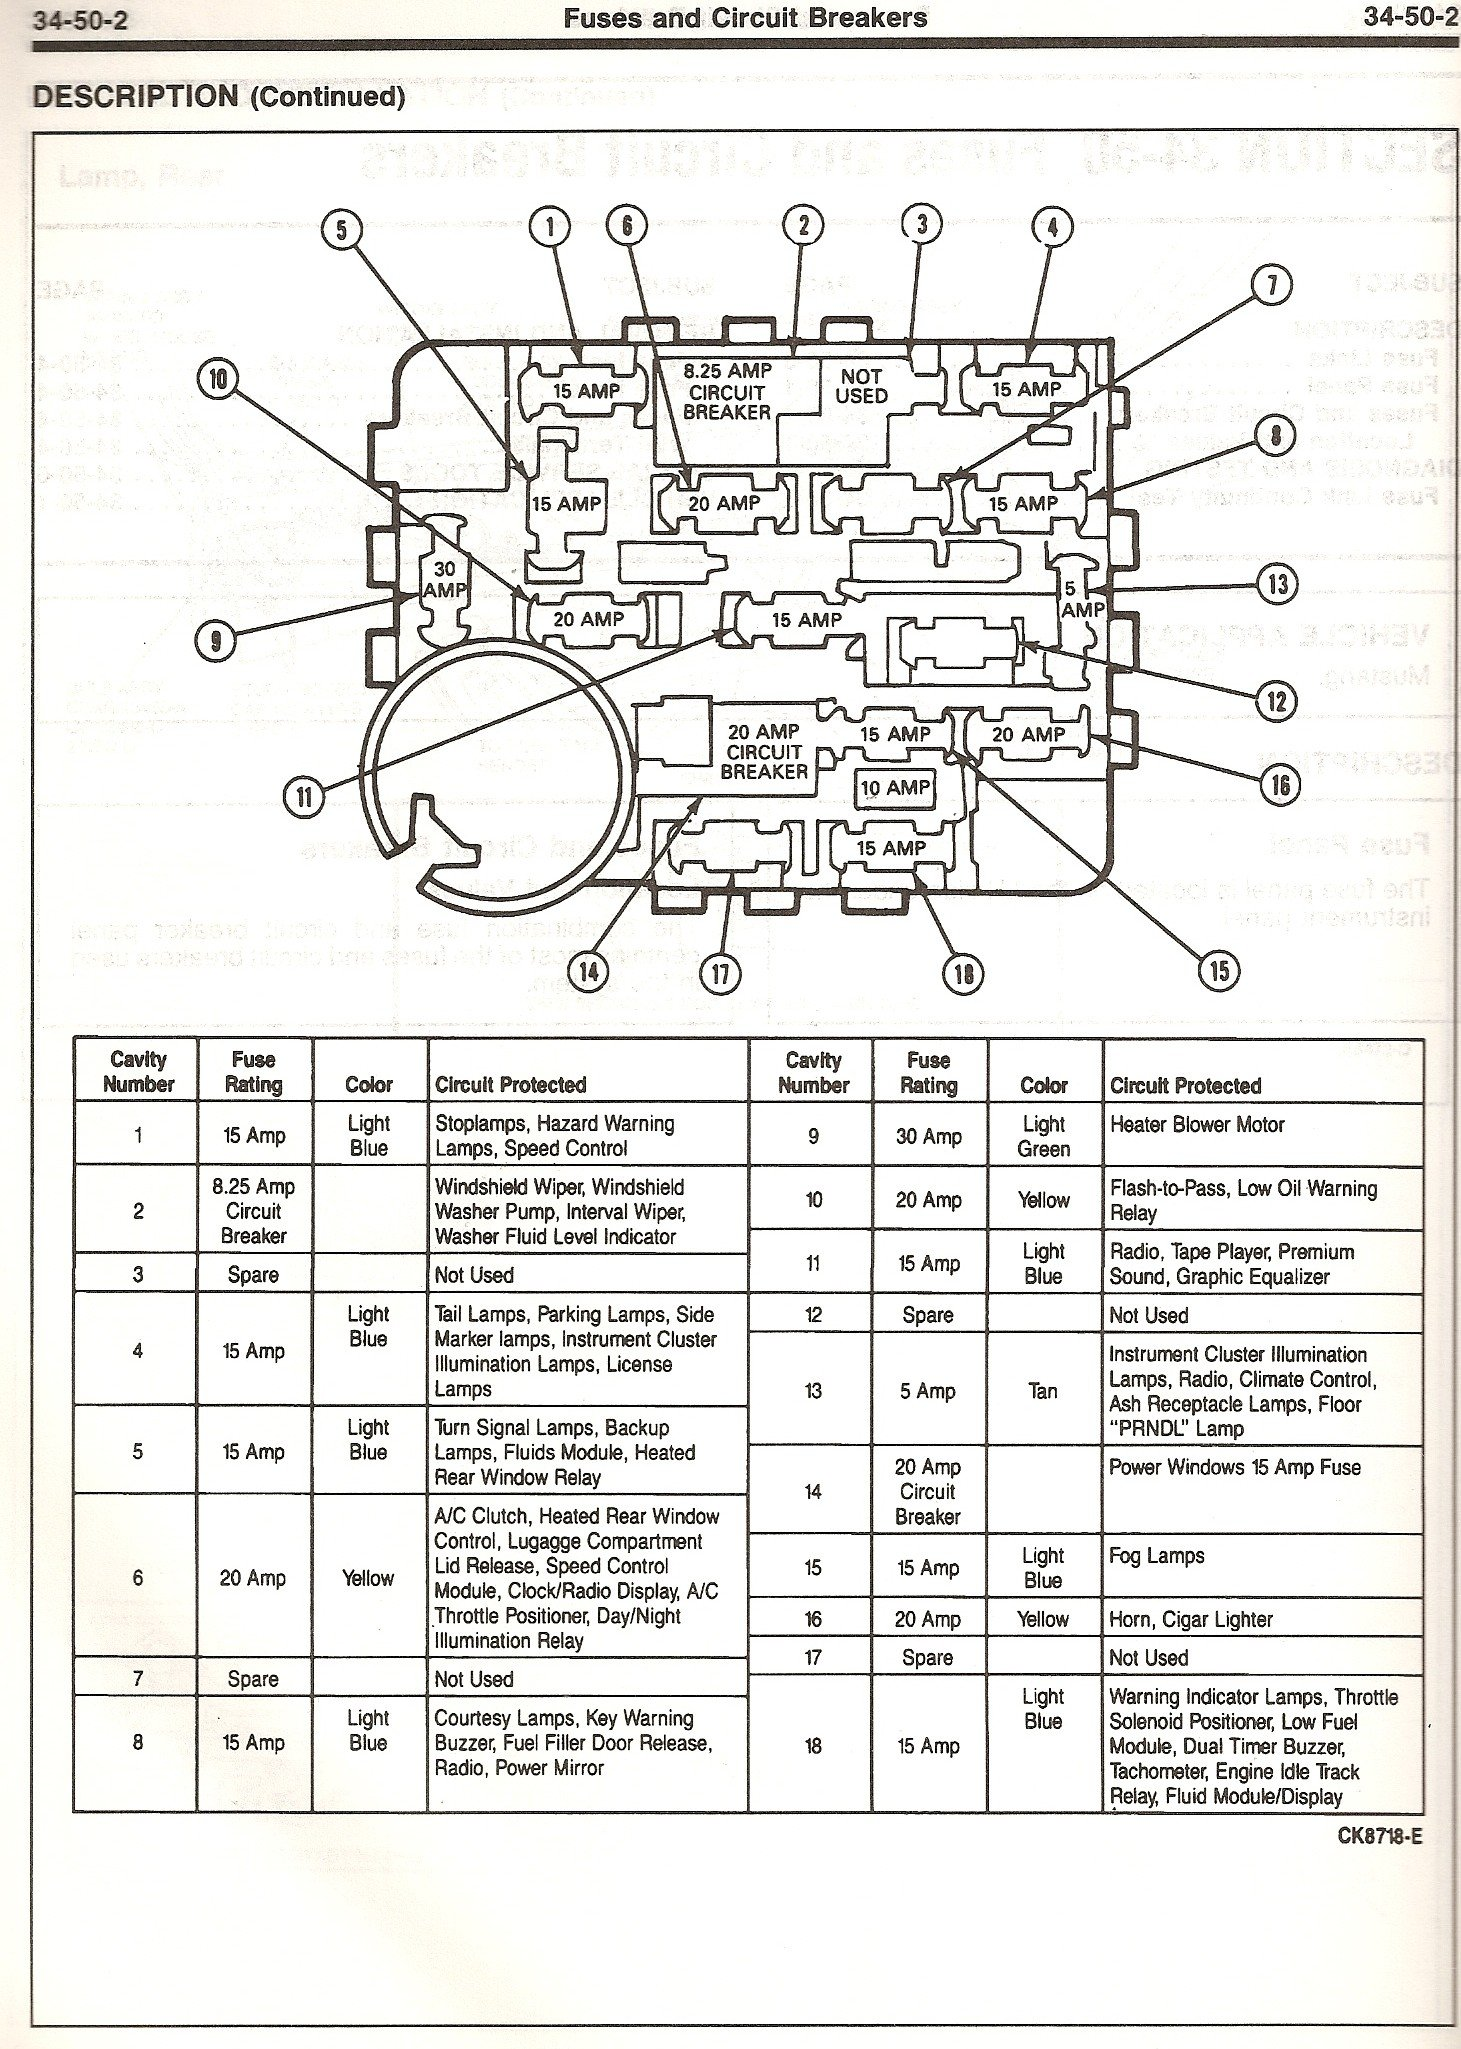 1997 Ford Thunderbird Engine Diagram Schematics Wiring Diagrams Explorer 97 Fuse Box Trusted Rh Dafpods Co Sc Wheels